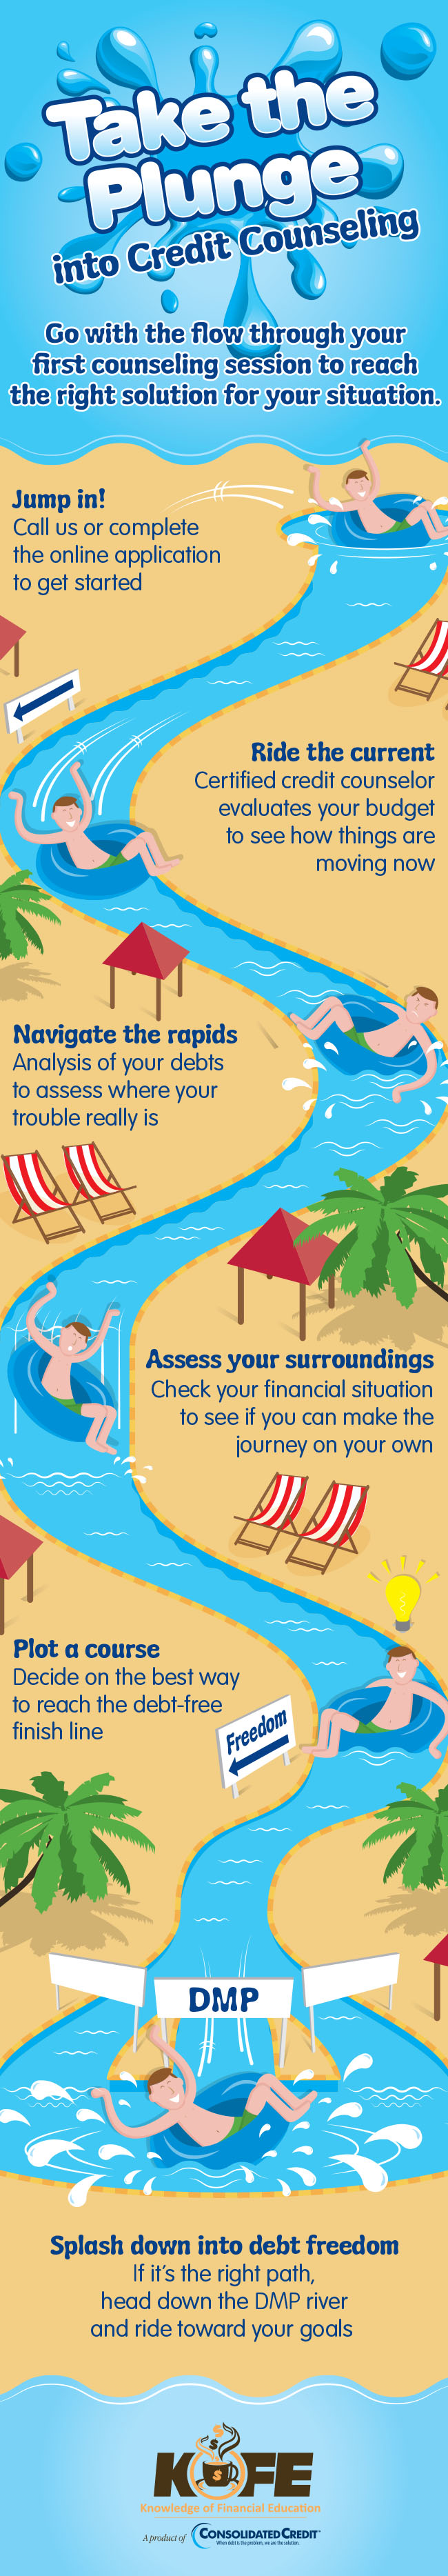 Take the Plunge infographic